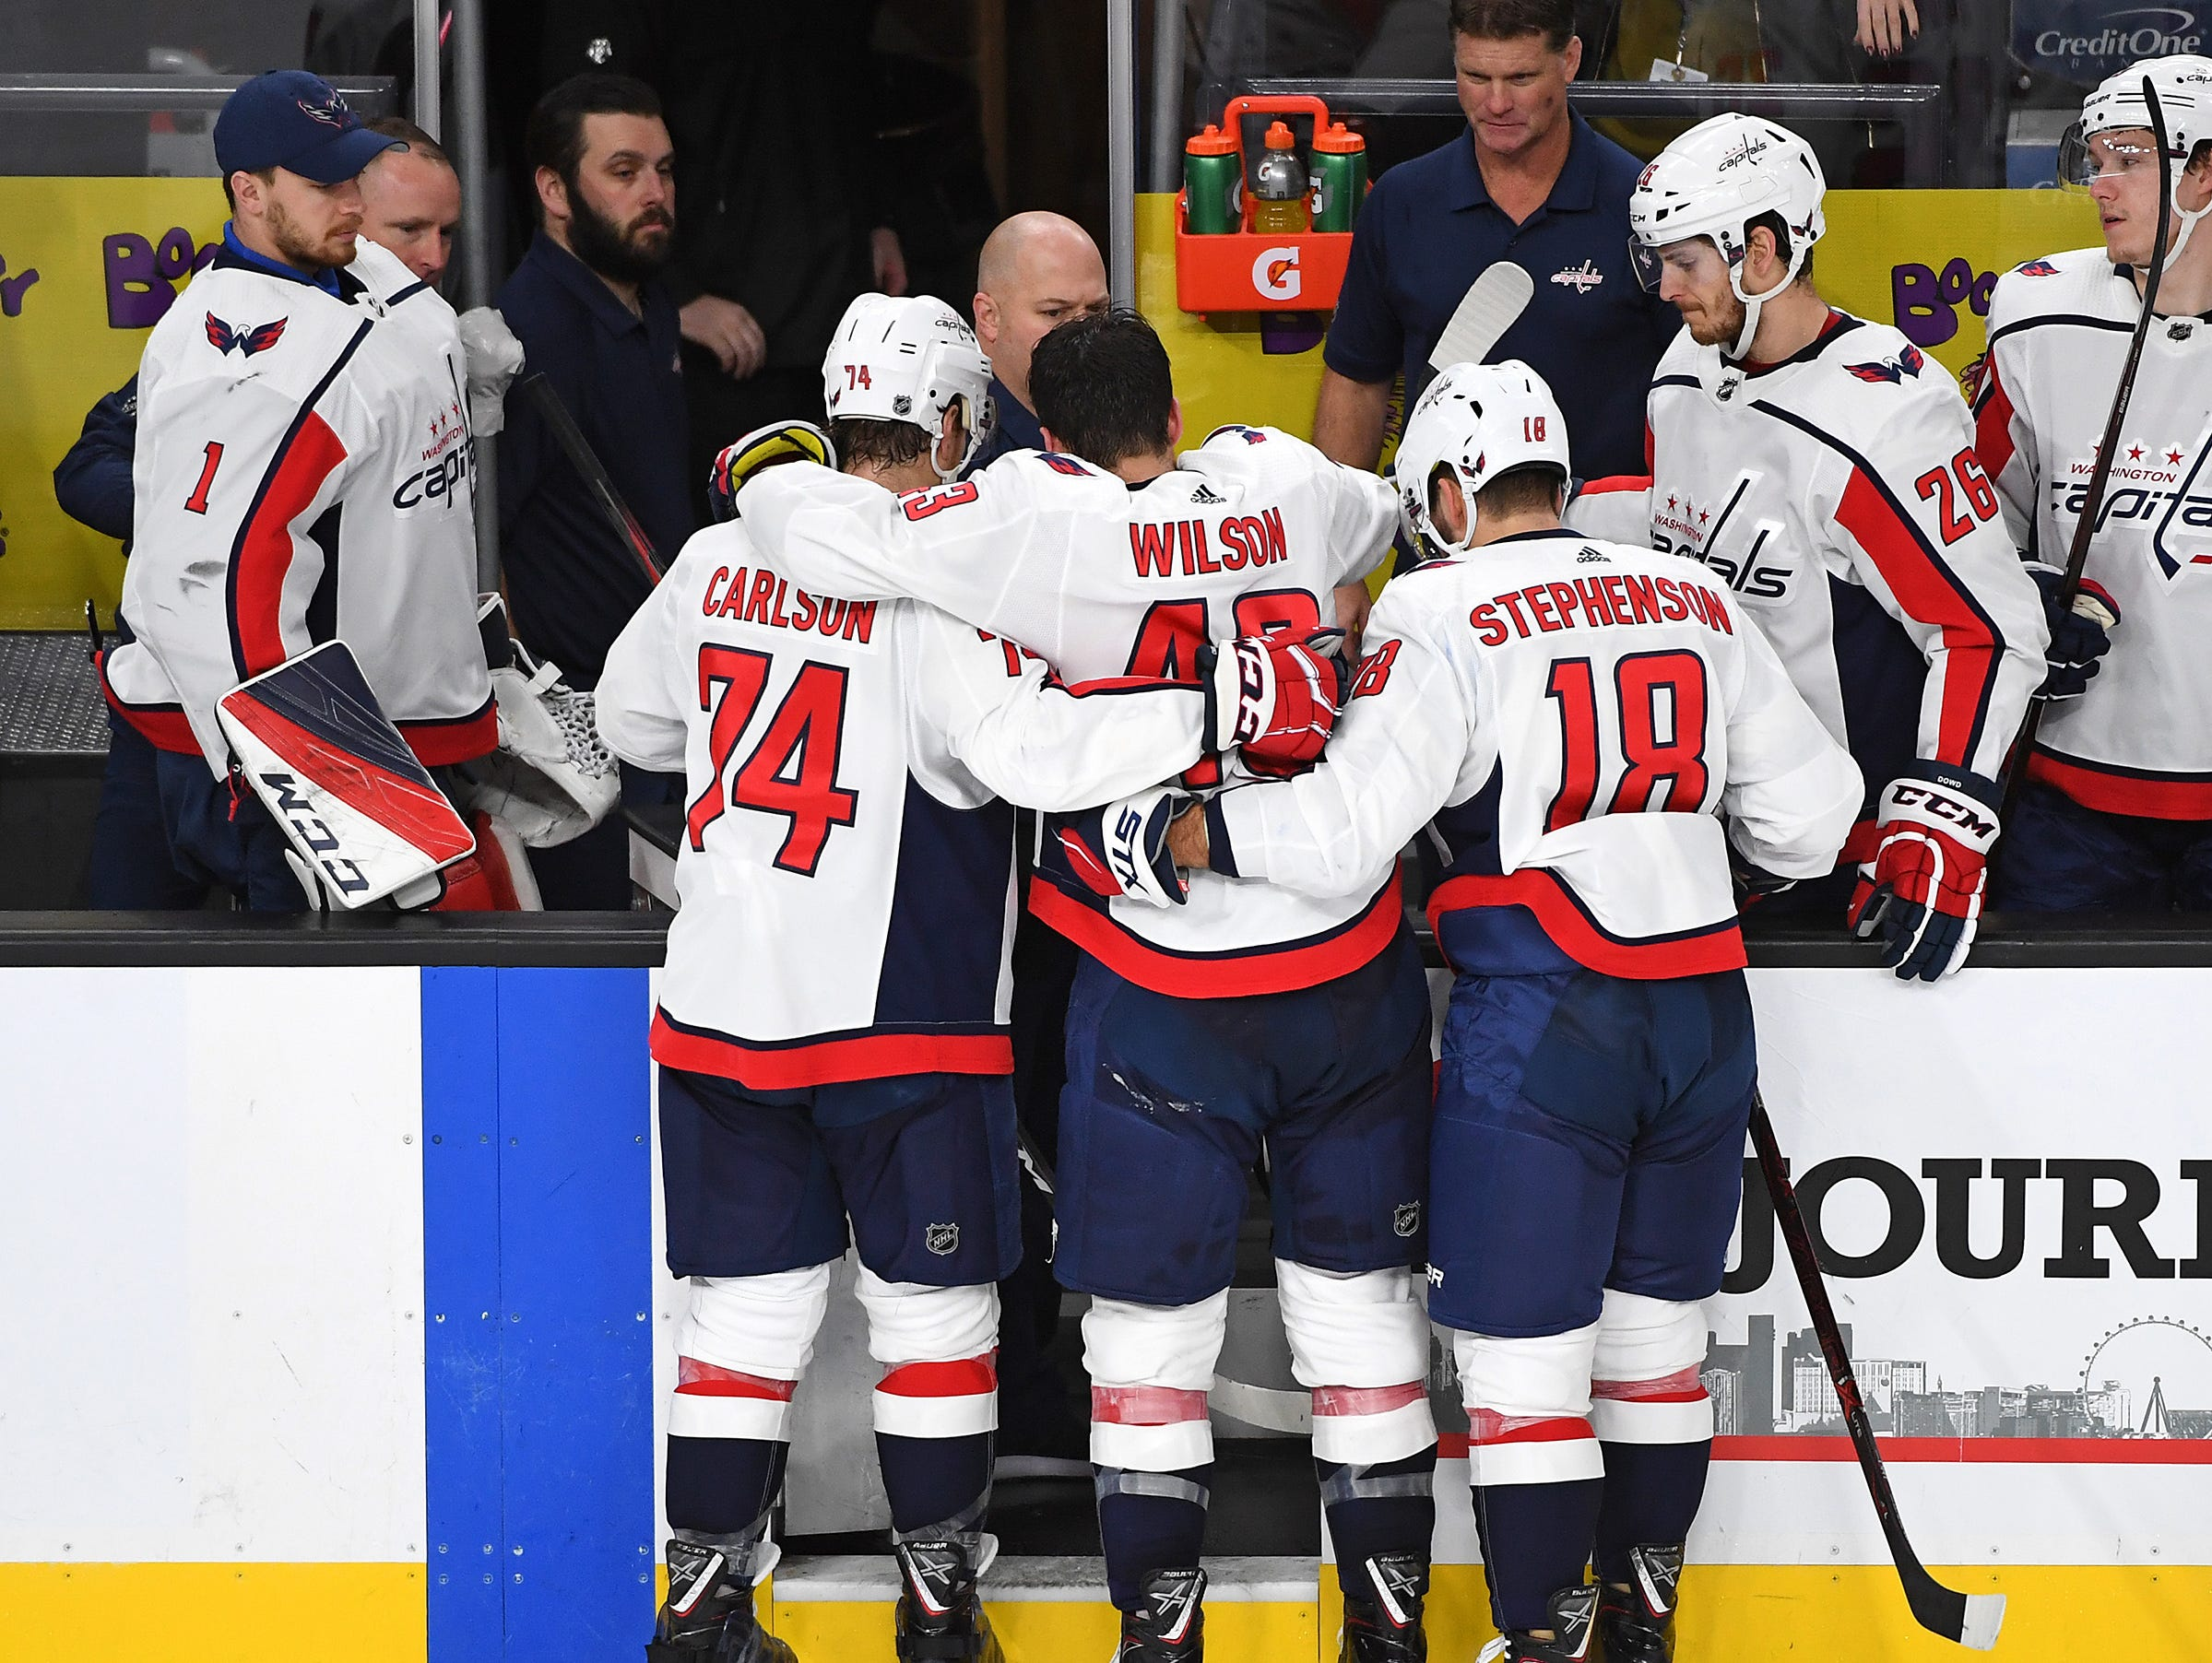 Dec. 4: Washington Capitals right wing Tom Wilson (43) is helped off the ice by defenseman John Carlson (74) and center Chandler Stephenson (18) after suffering an apparent injury during the second period against the Vegas Golden Knights at T-Mobile Arena.